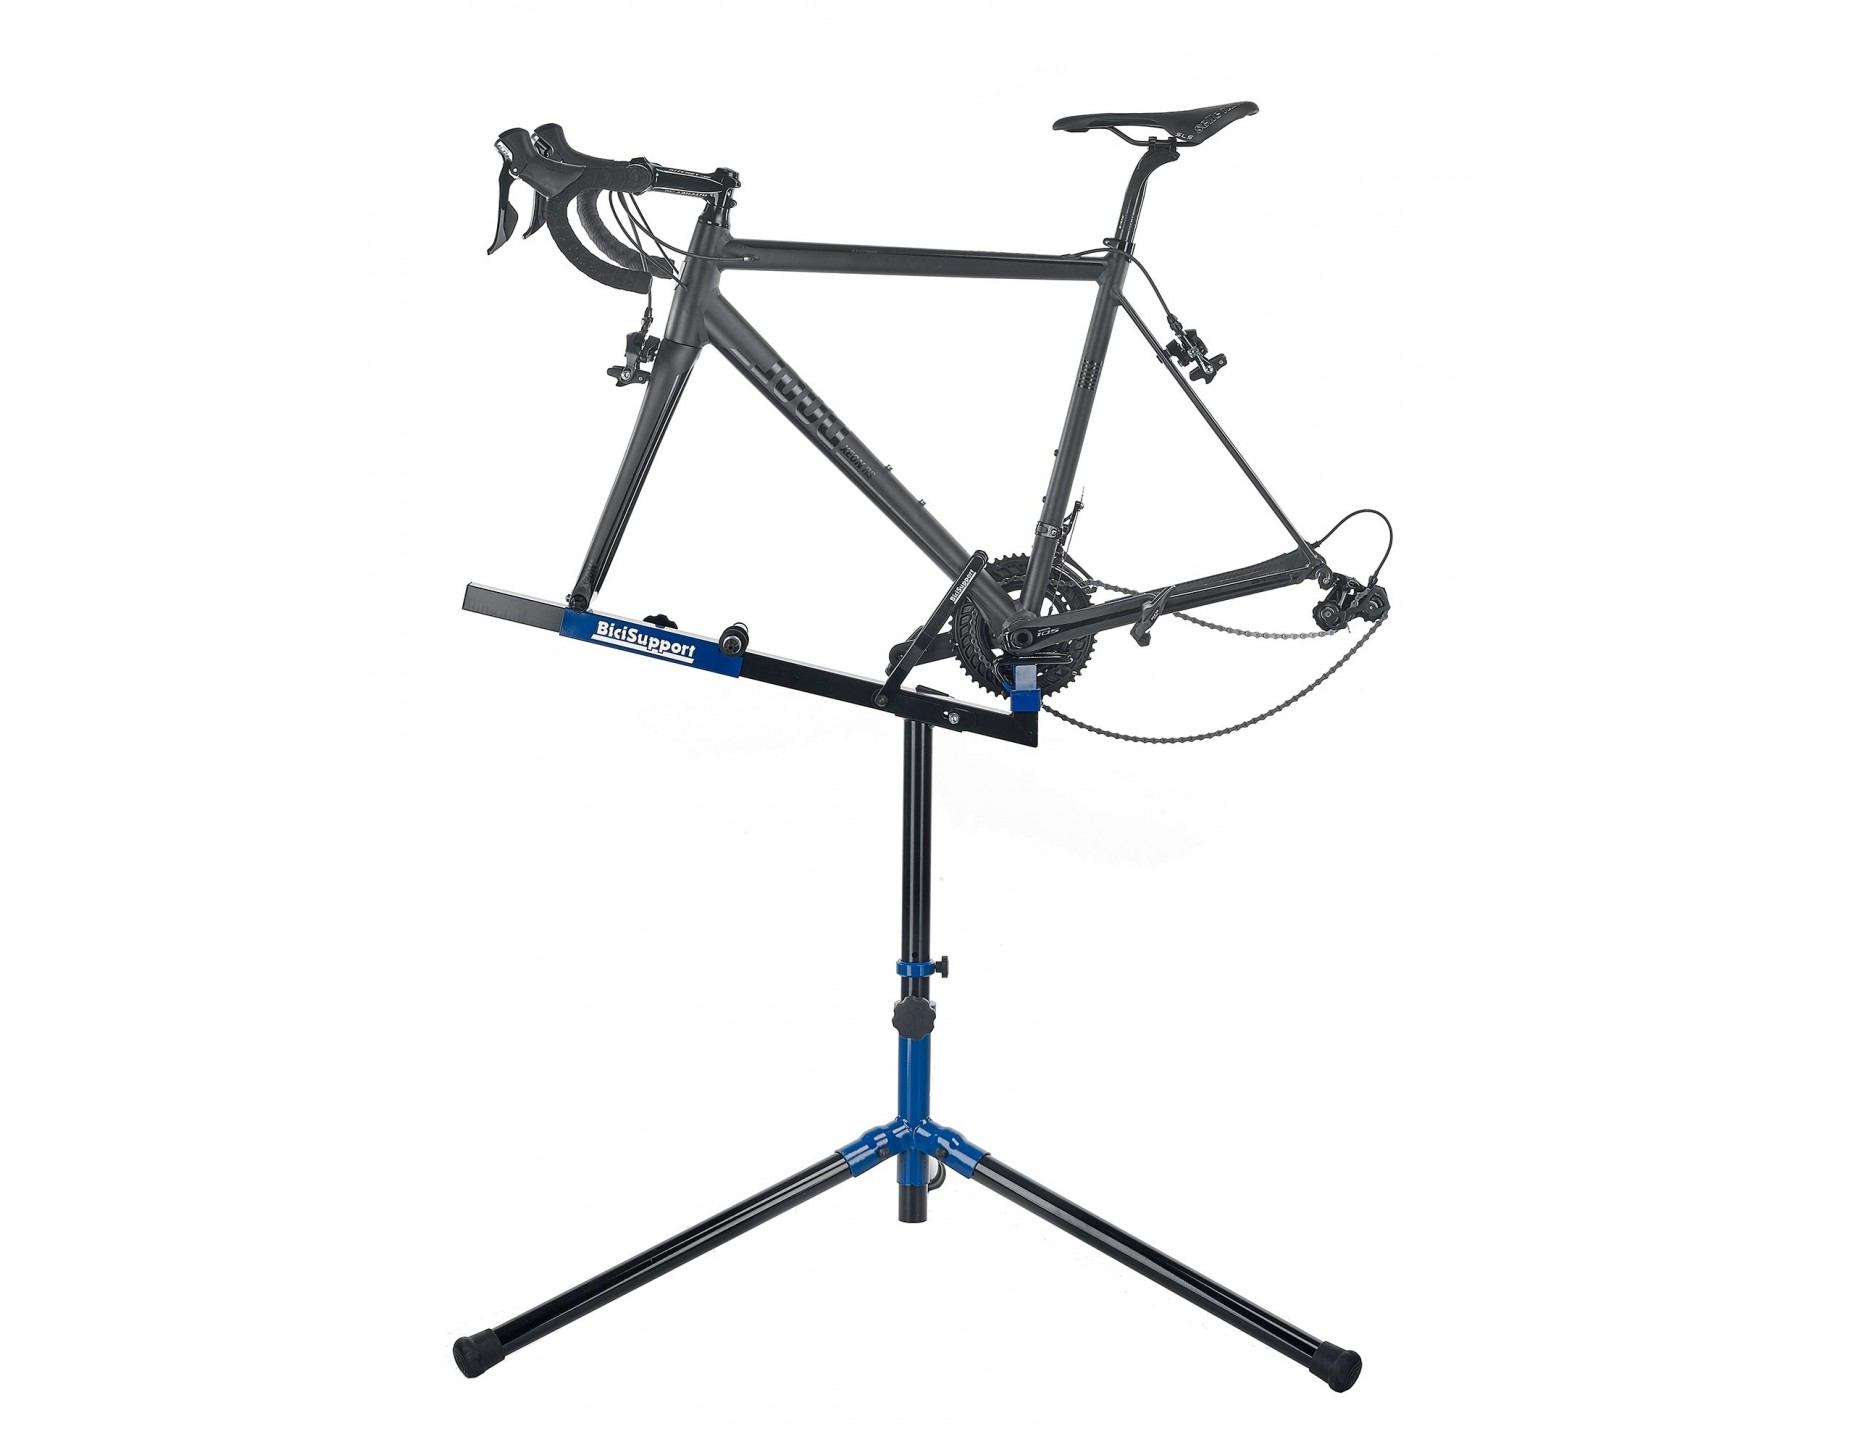 Bicisupport Maxi Pro Team Assembly Stand Everything You